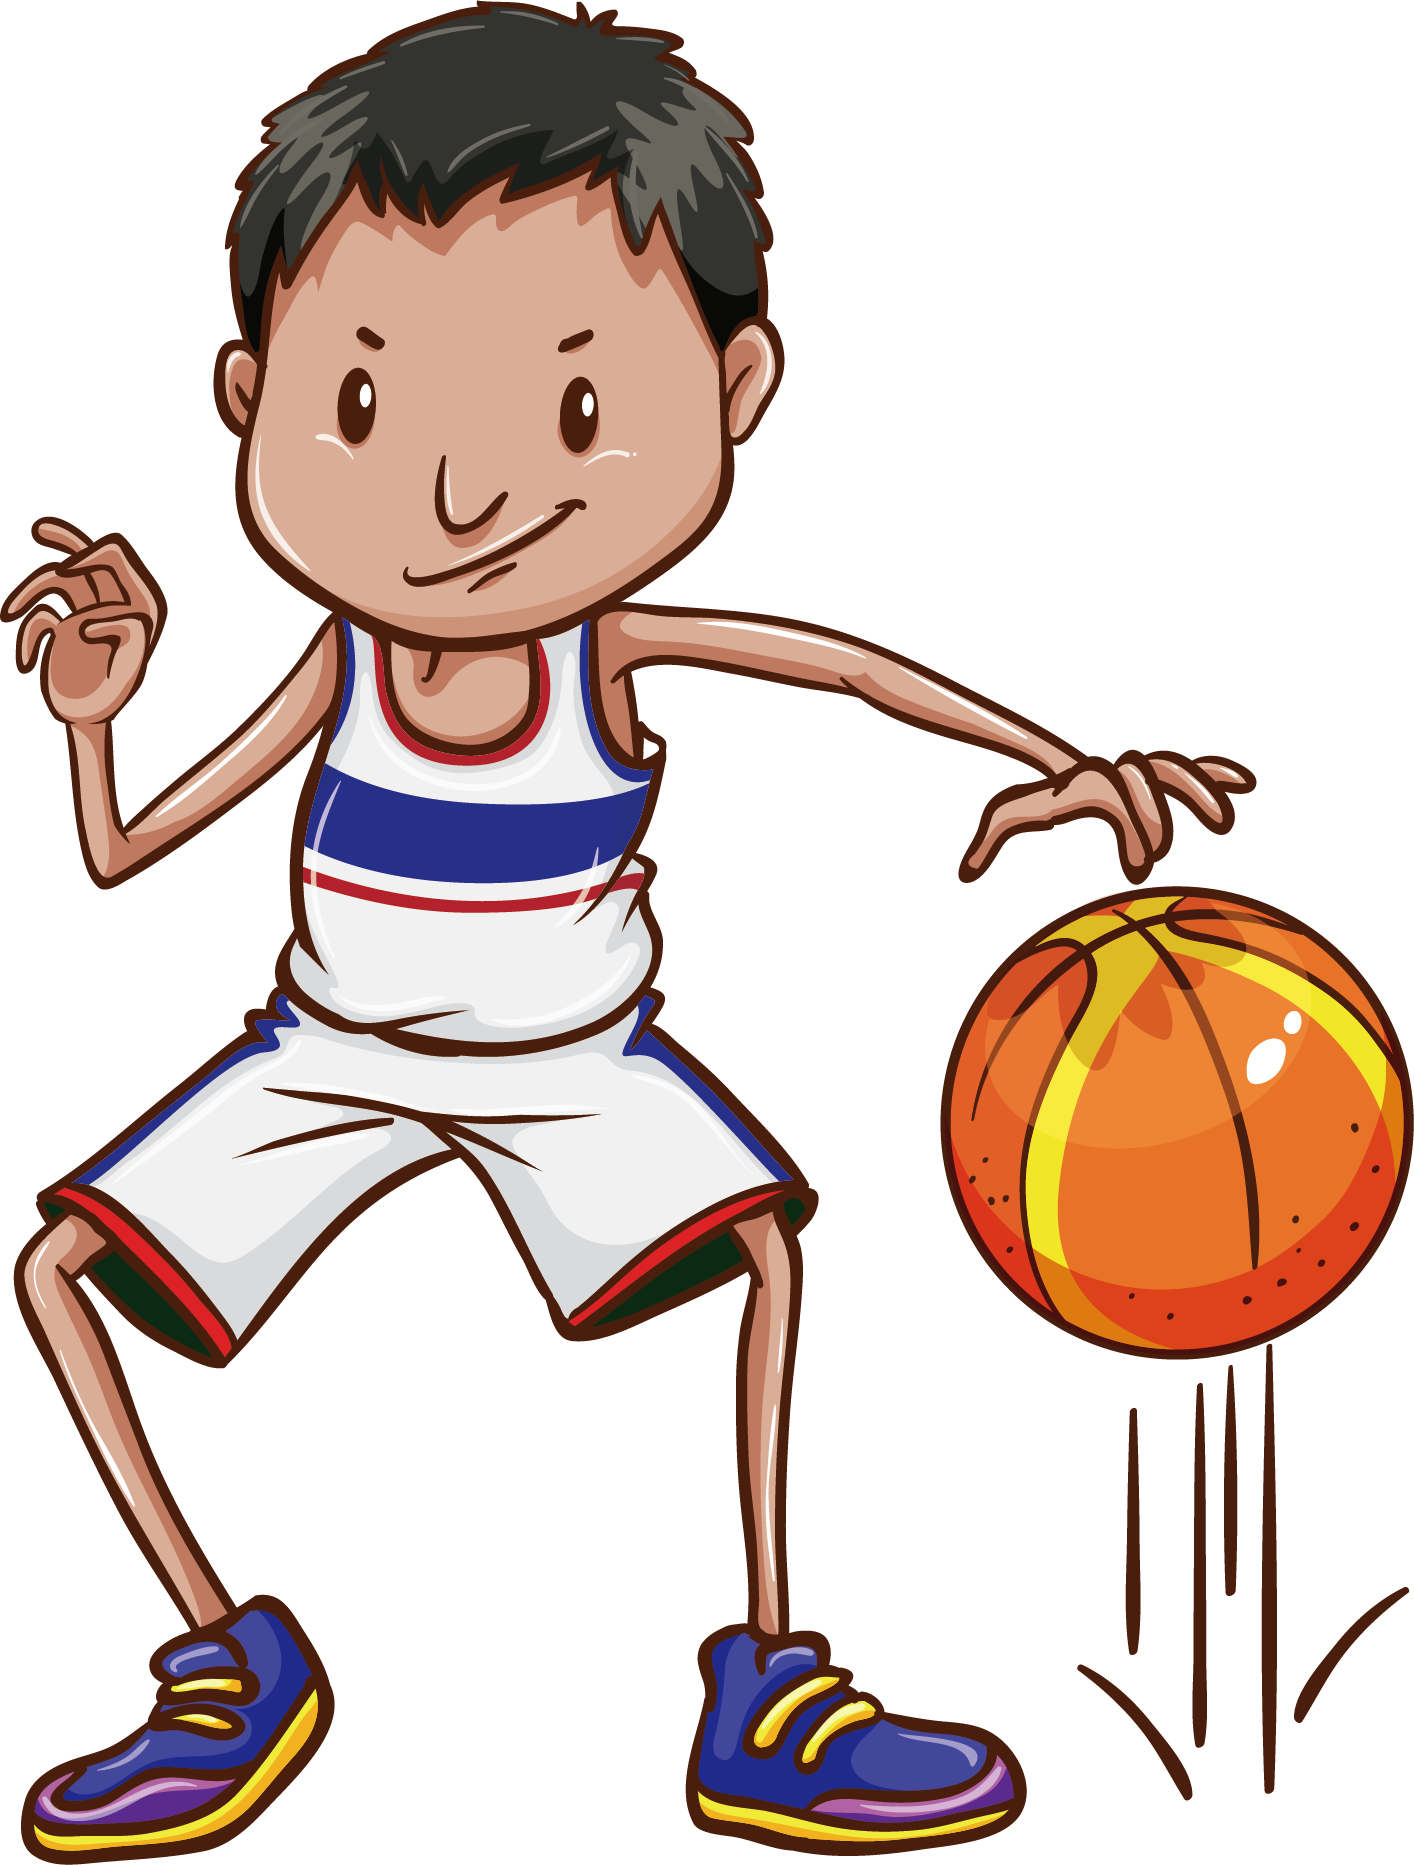 Basketball player dribbling clipart picture stock Basketball Dribbling Clip art - Physical education basketball 1414 ... picture stock